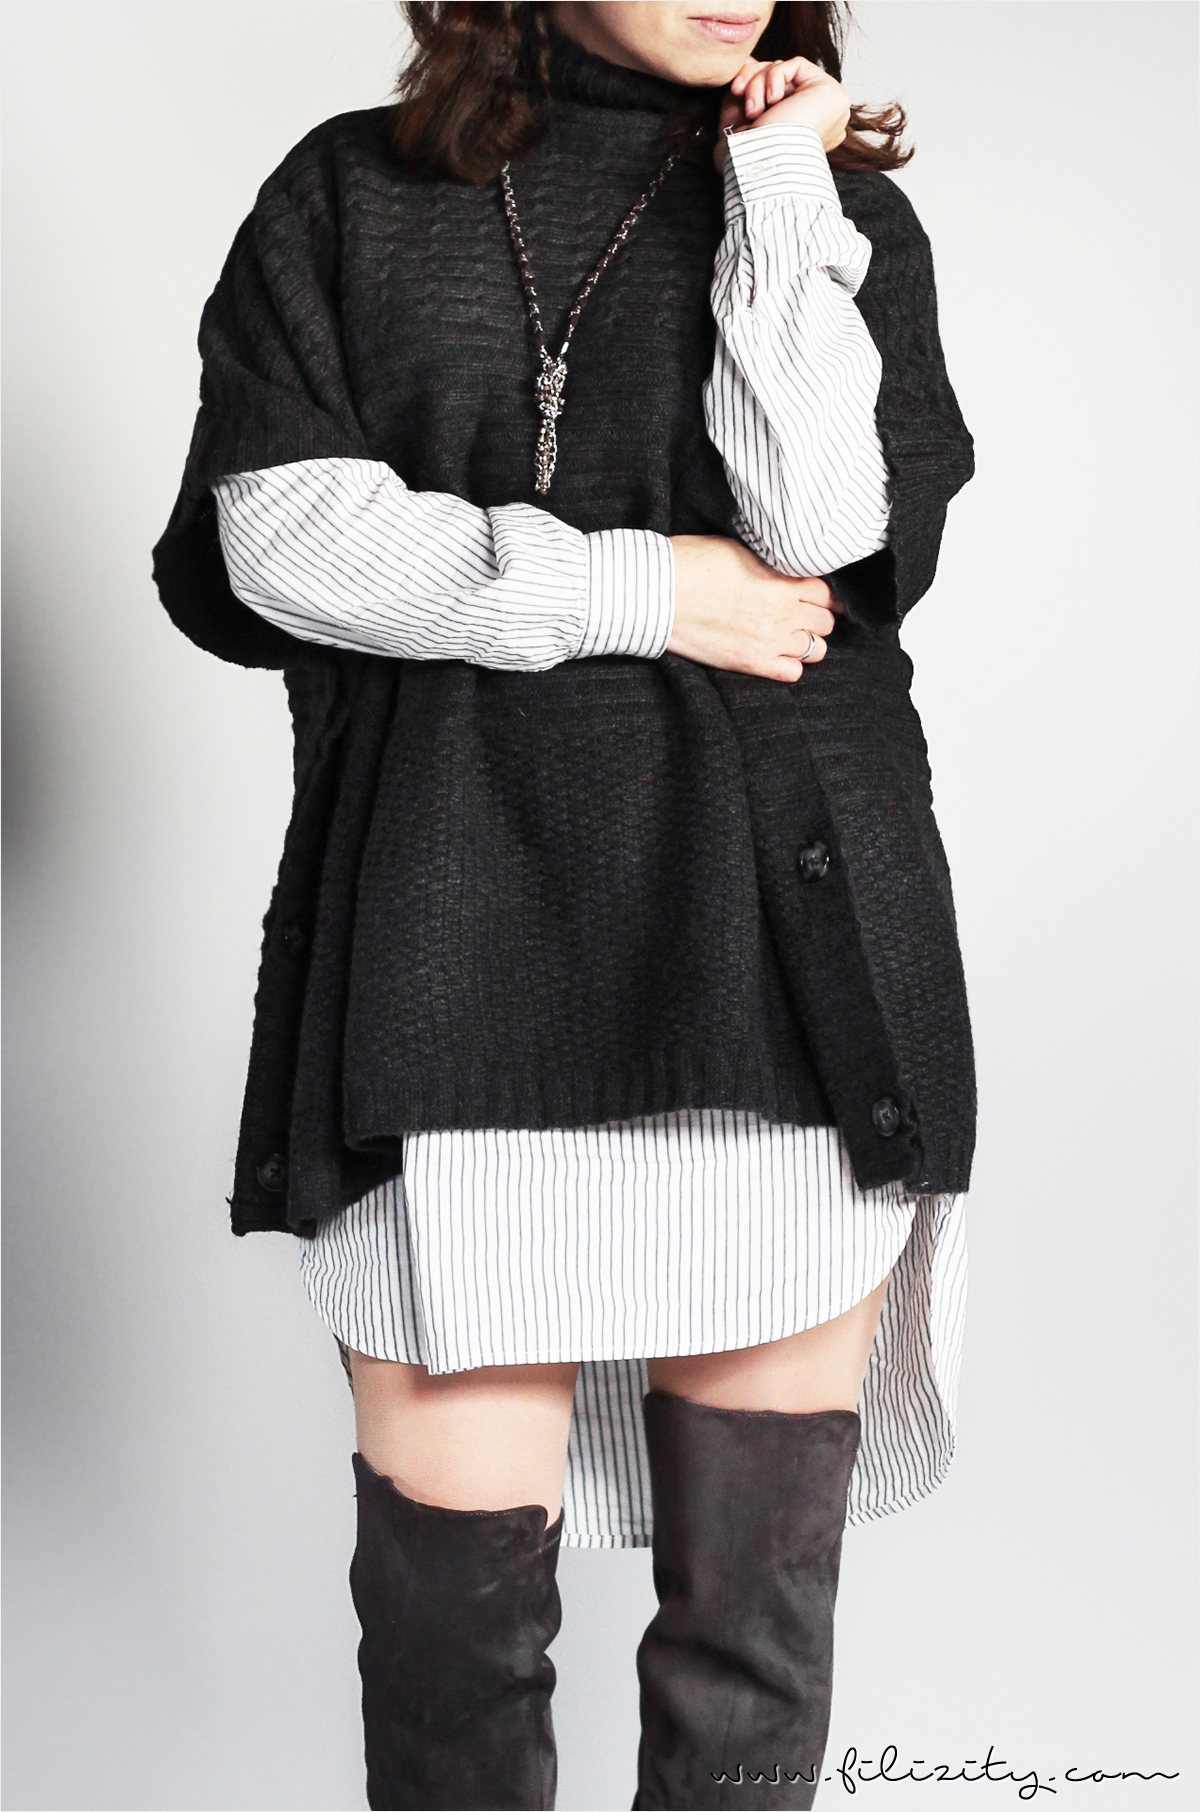 Cozy Layers - Monochromer Lagenlook | A Little Fashion | https://www.filizity.com/fashion/cozy-layering-monochromer-lagenlook